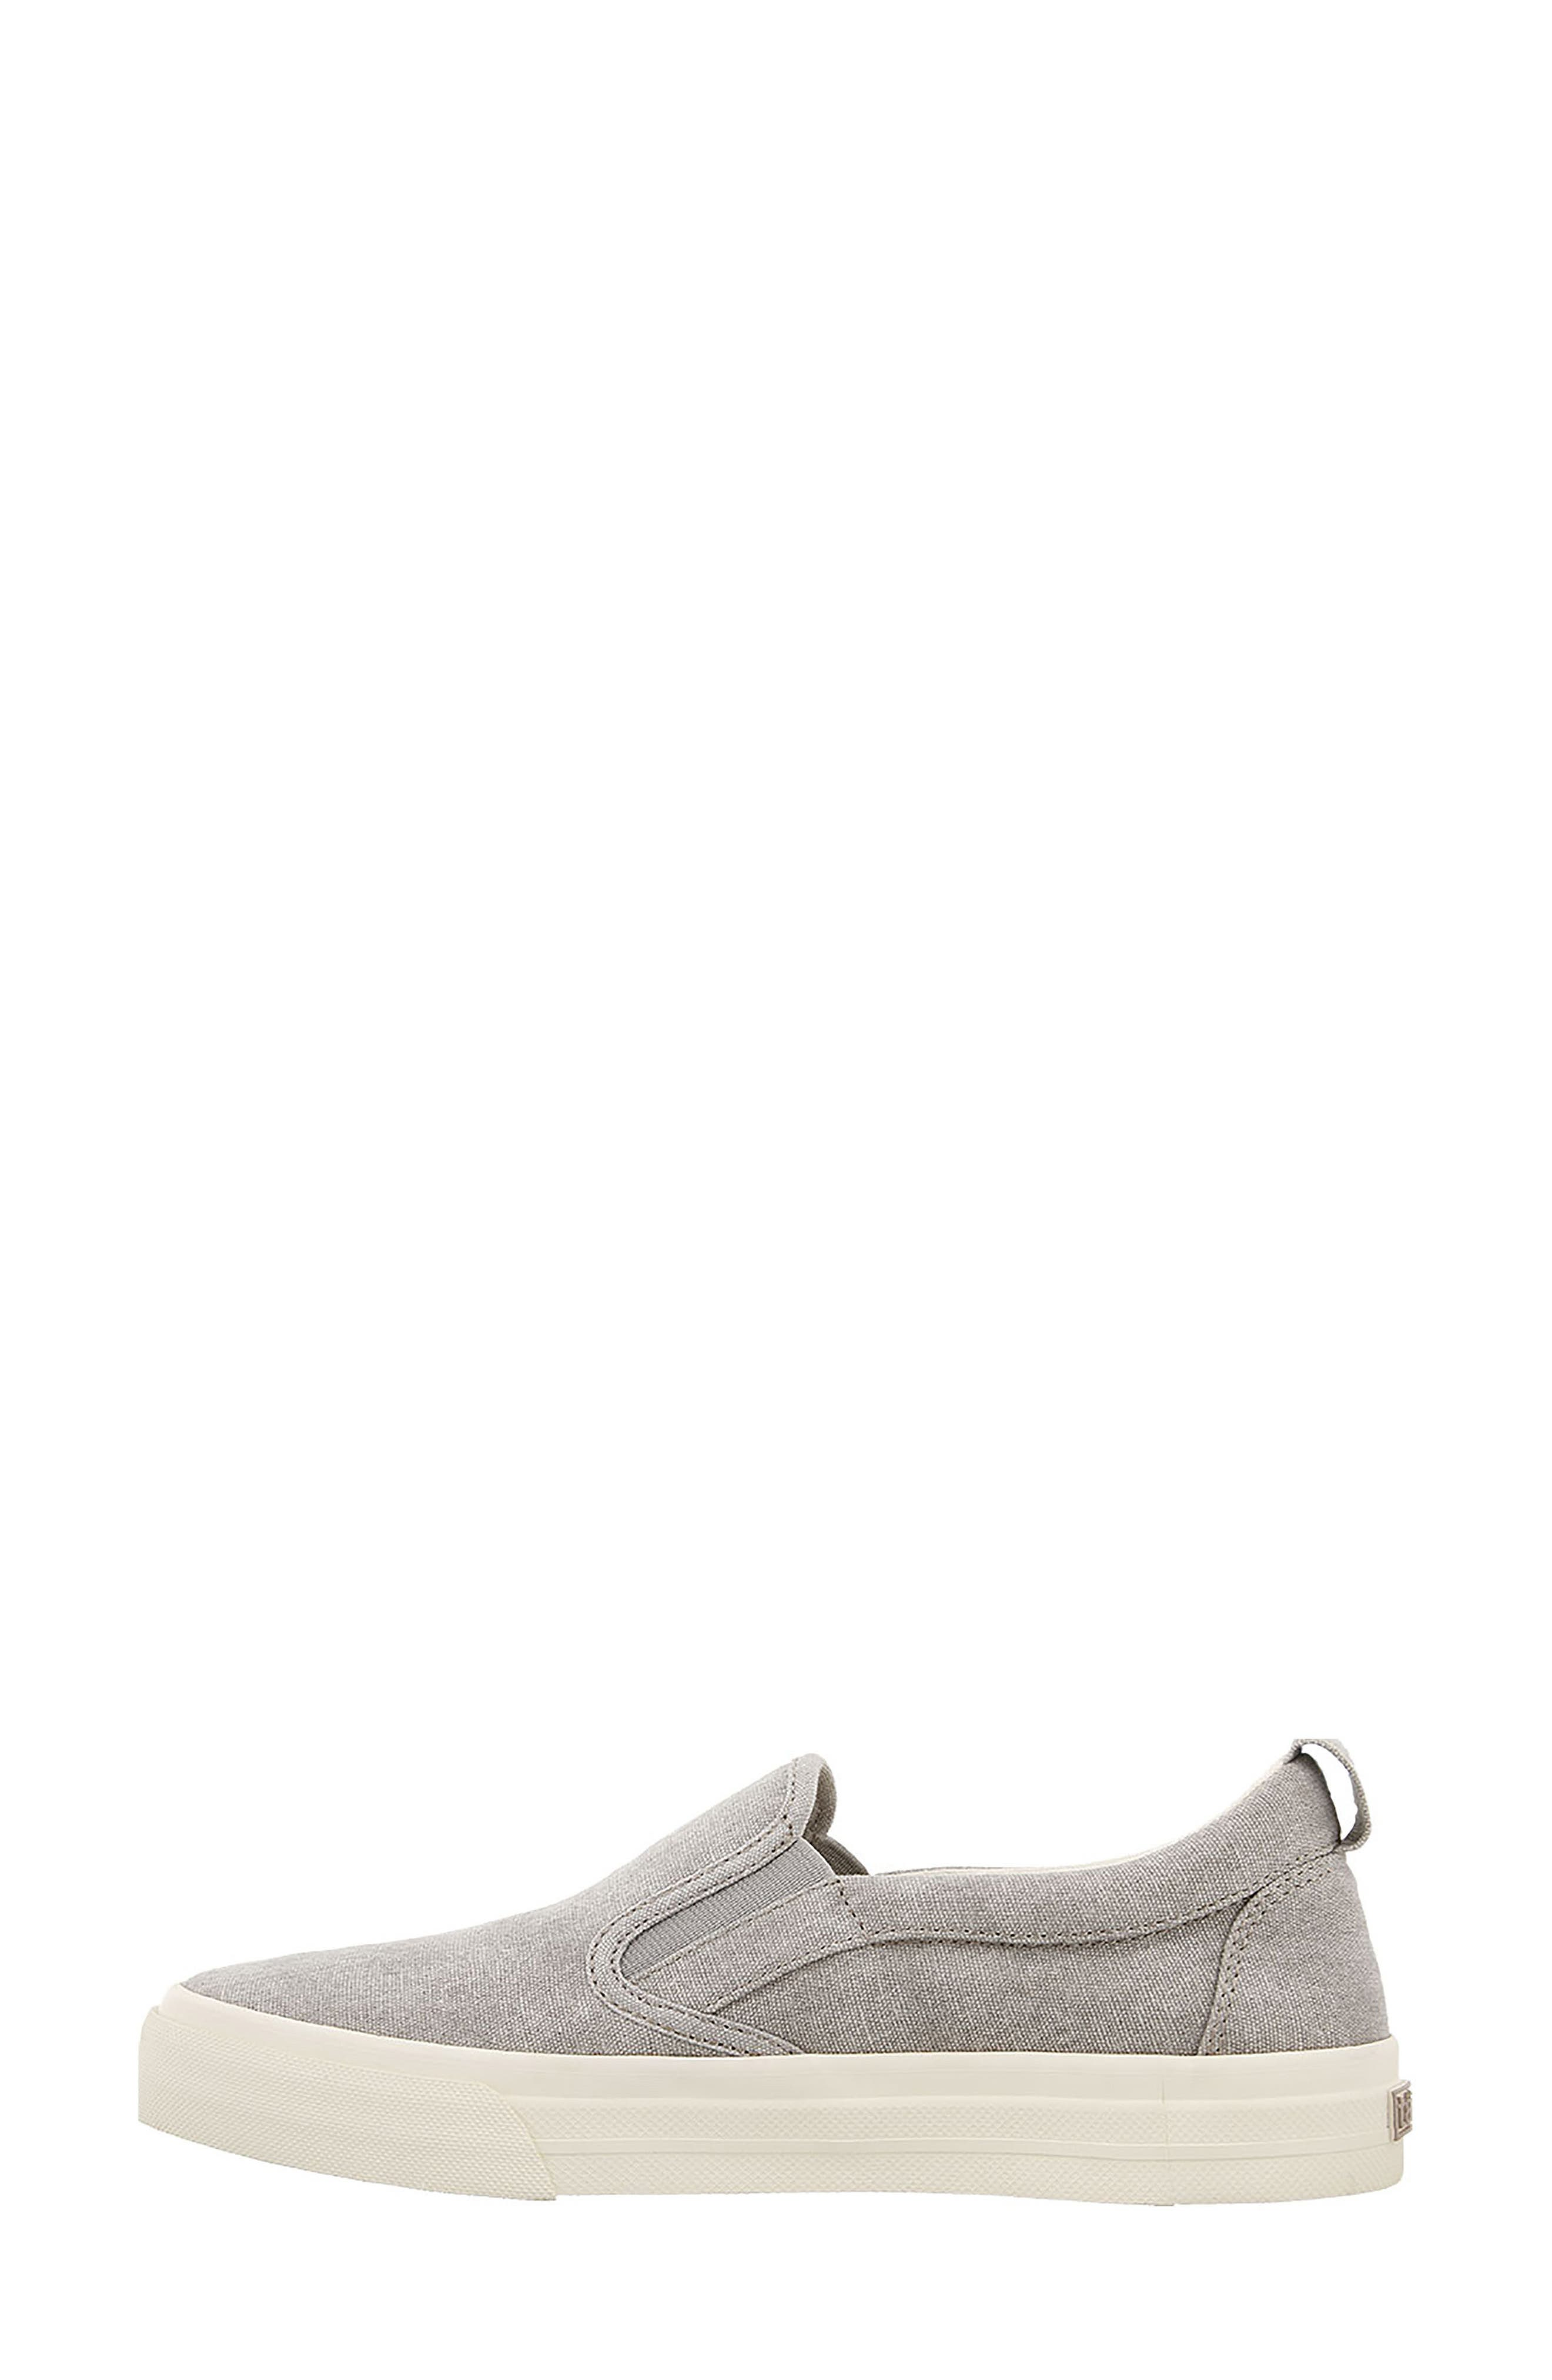 Soul Slip-On Sneaker,                             Alternate thumbnail 3, color,                             GREY WASH CANVAS